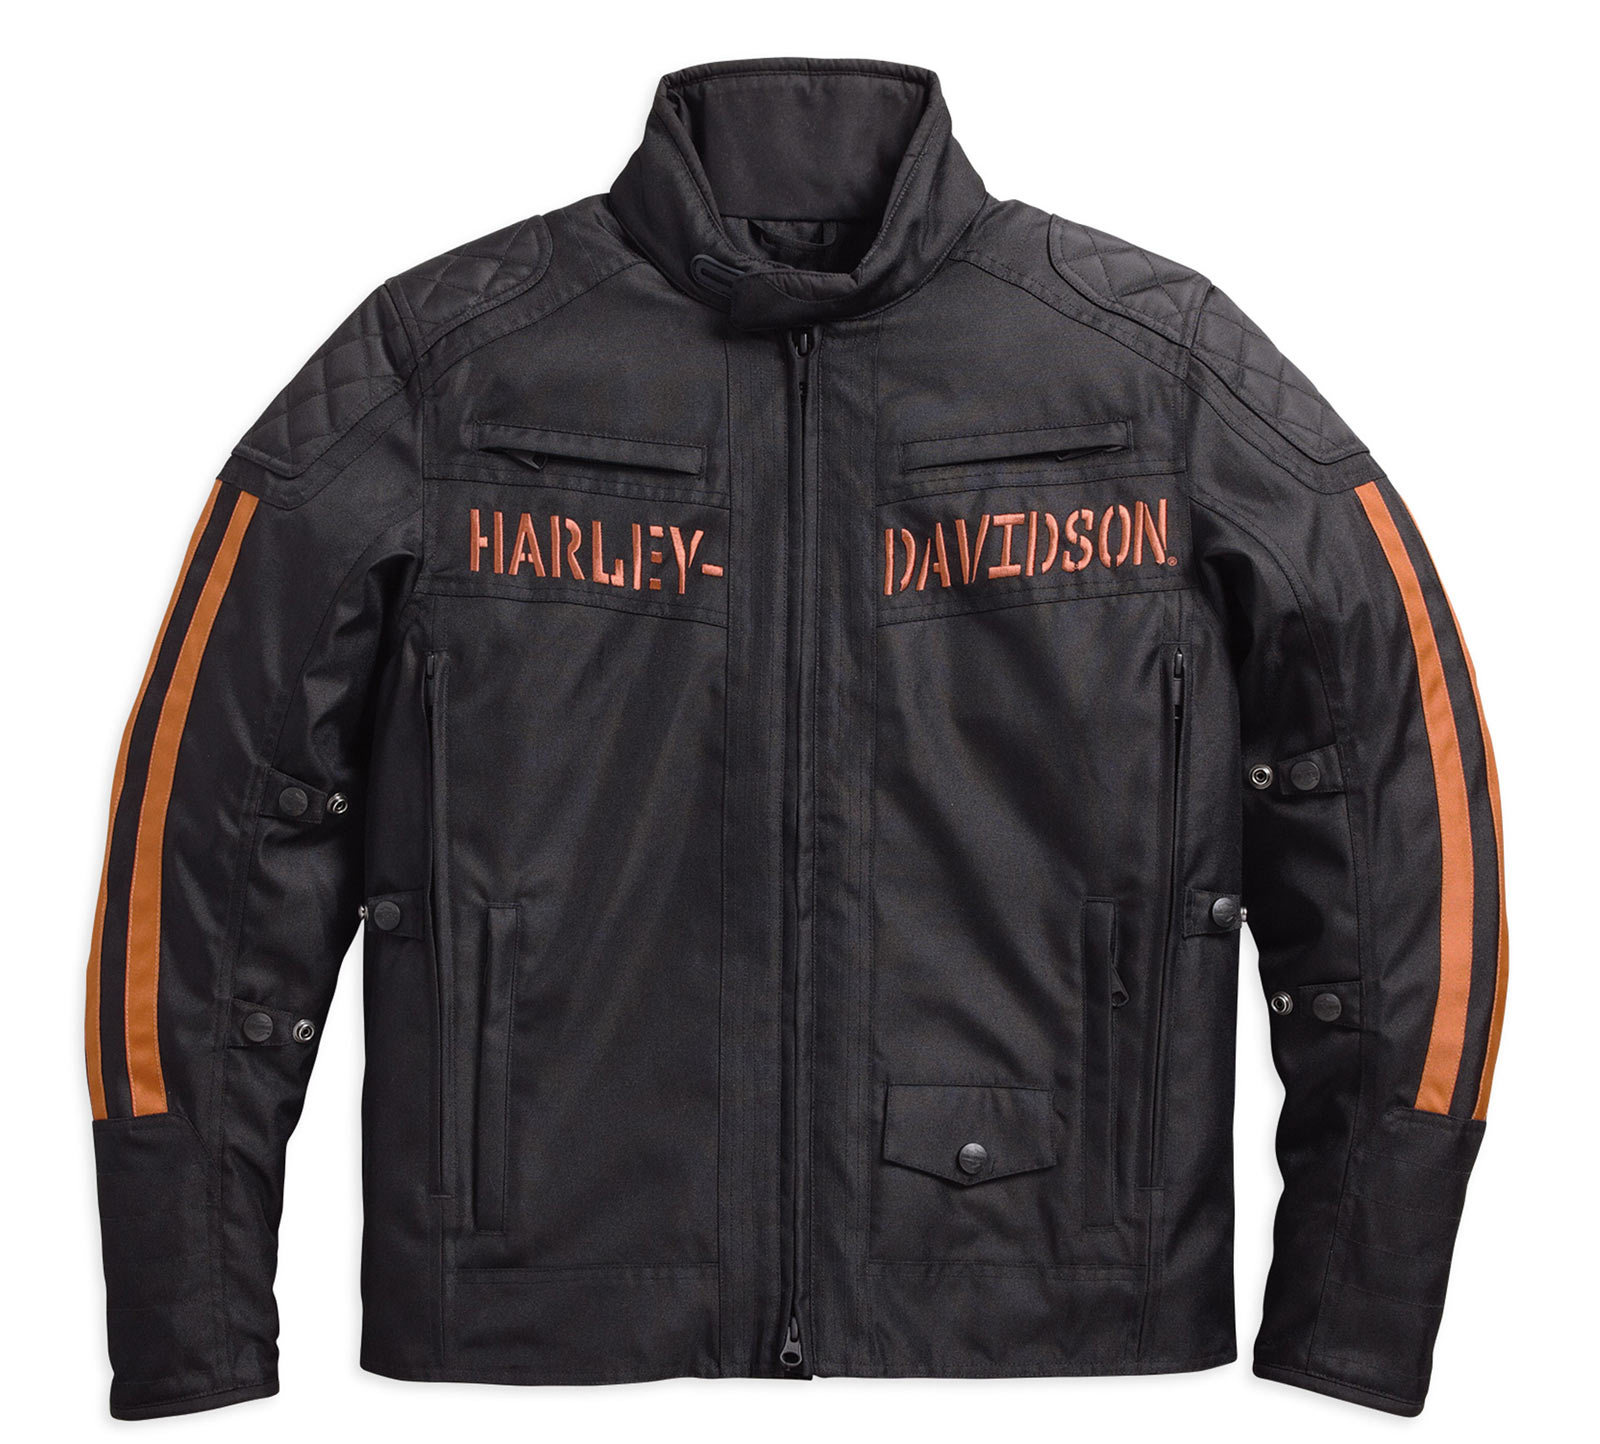 97158 17vm harley davidson motorradjacke foley im. Black Bedroom Furniture Sets. Home Design Ideas